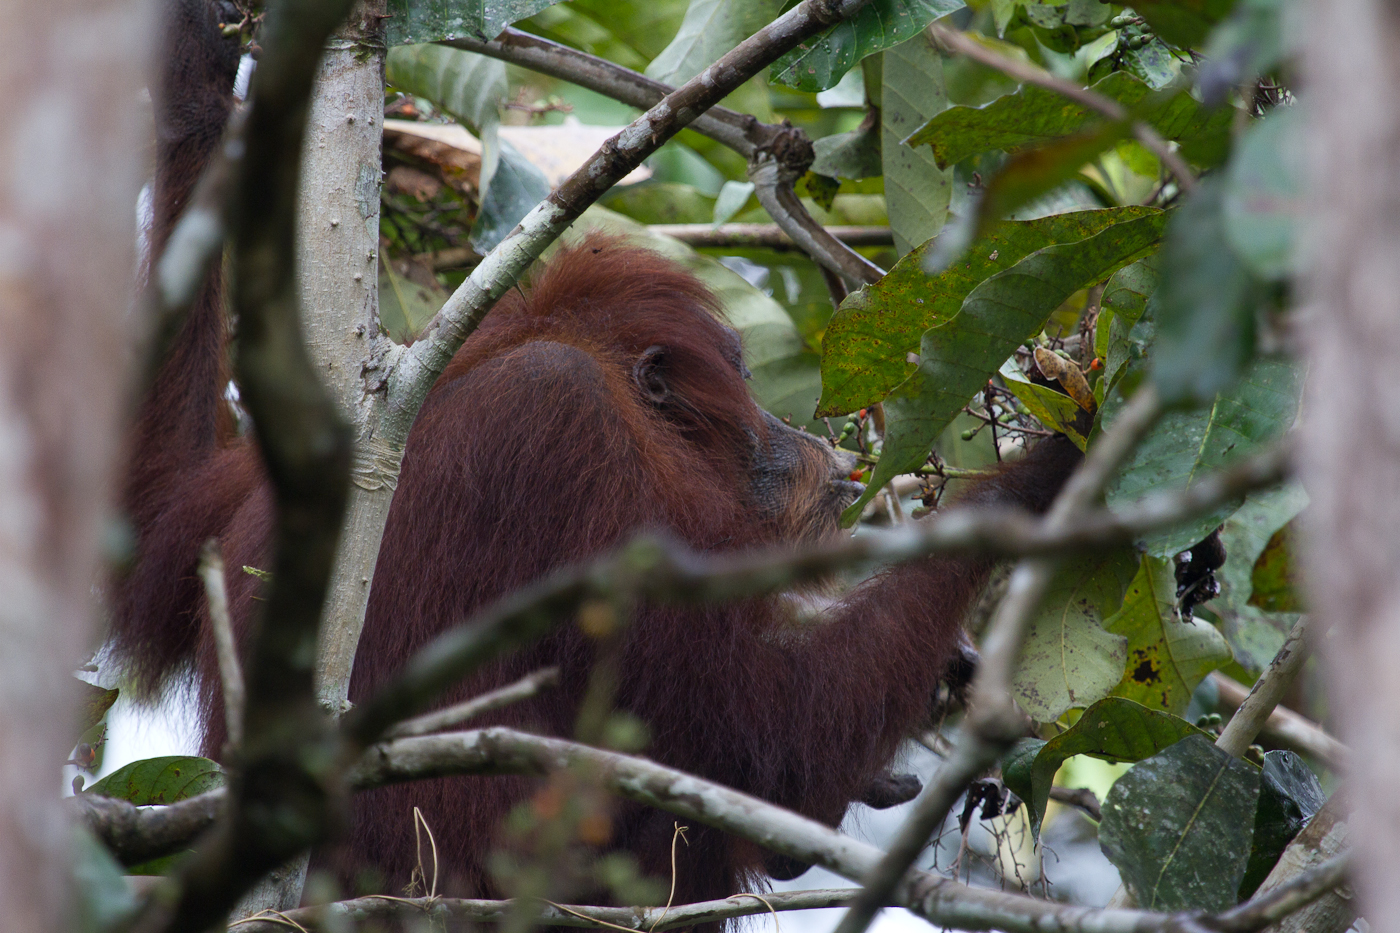 Bongo the Orangutan is still alive! This particular individual charged us last time we were in Danum. She is still going strong despite her cancer.